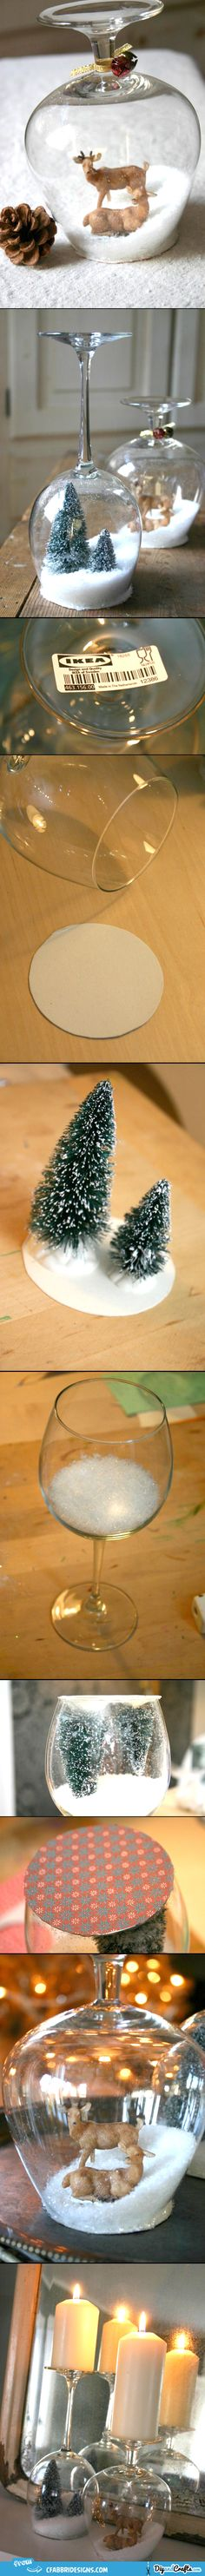 DIY Stemware Snow Globes @kari0112  We can do this will all of my extra wine glasses I refuse to throw away!